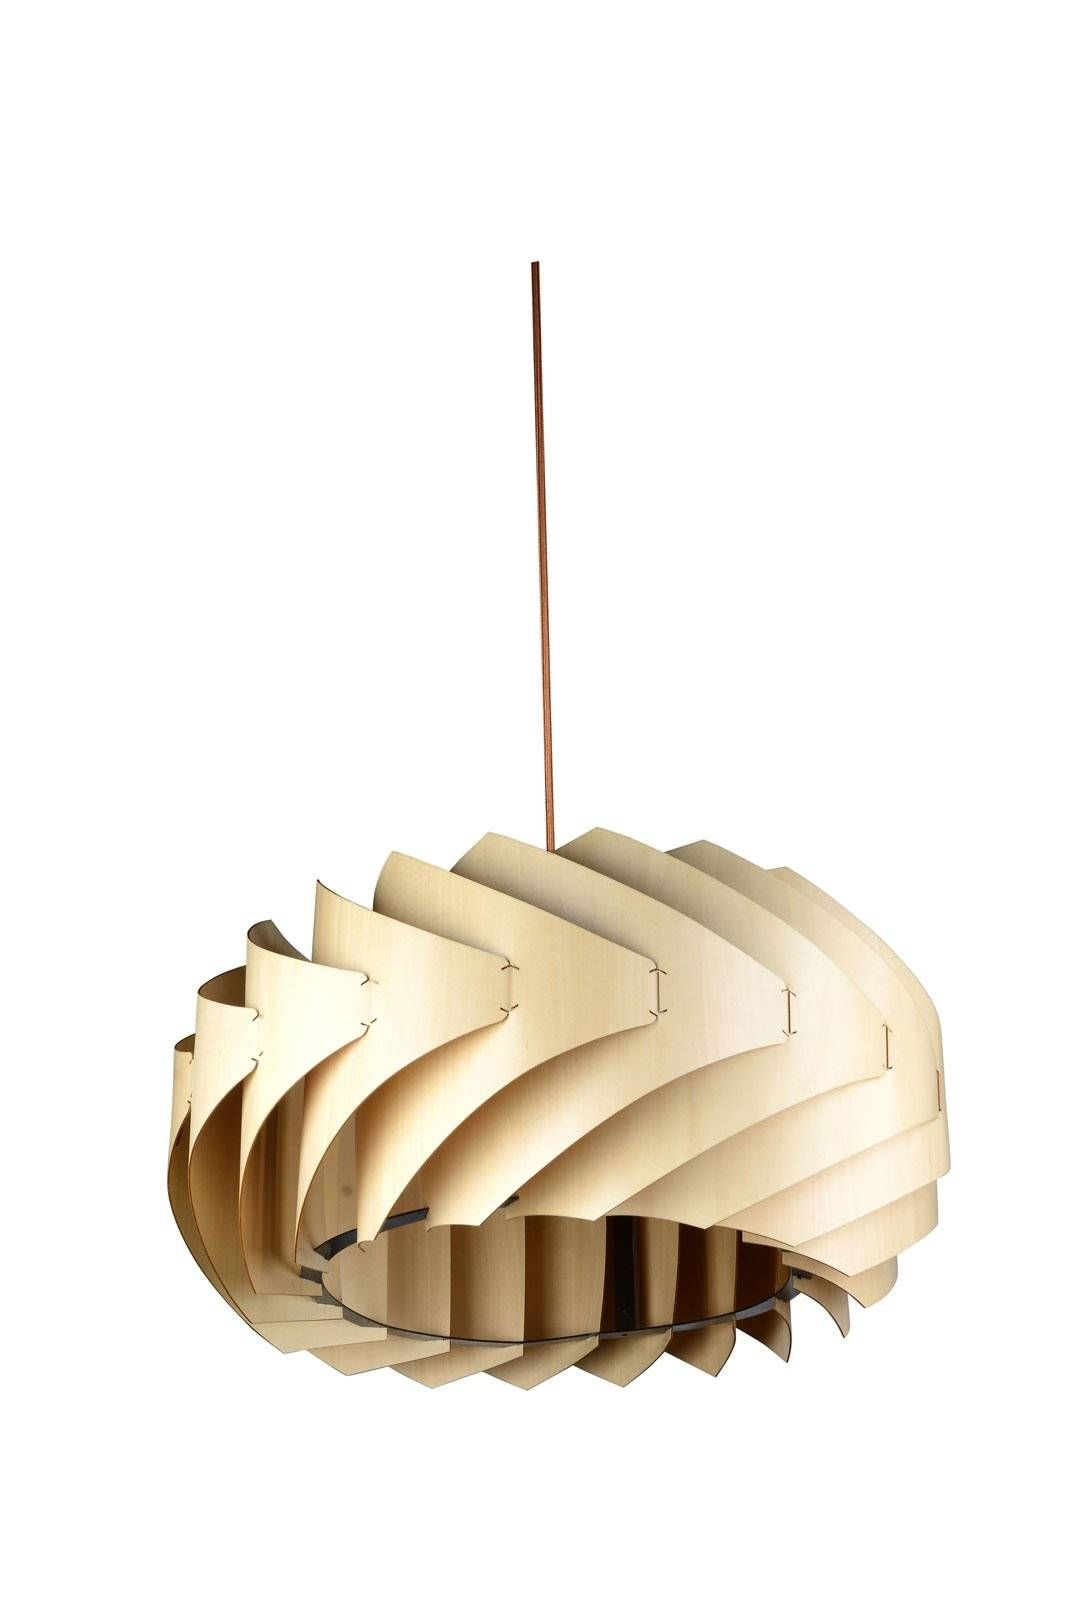 Buy Wood Pendant Light In Melbourne [Phoenix] - Youtube with regard to Wooden Pendant Lights Melbourne (Image 3 of 15)